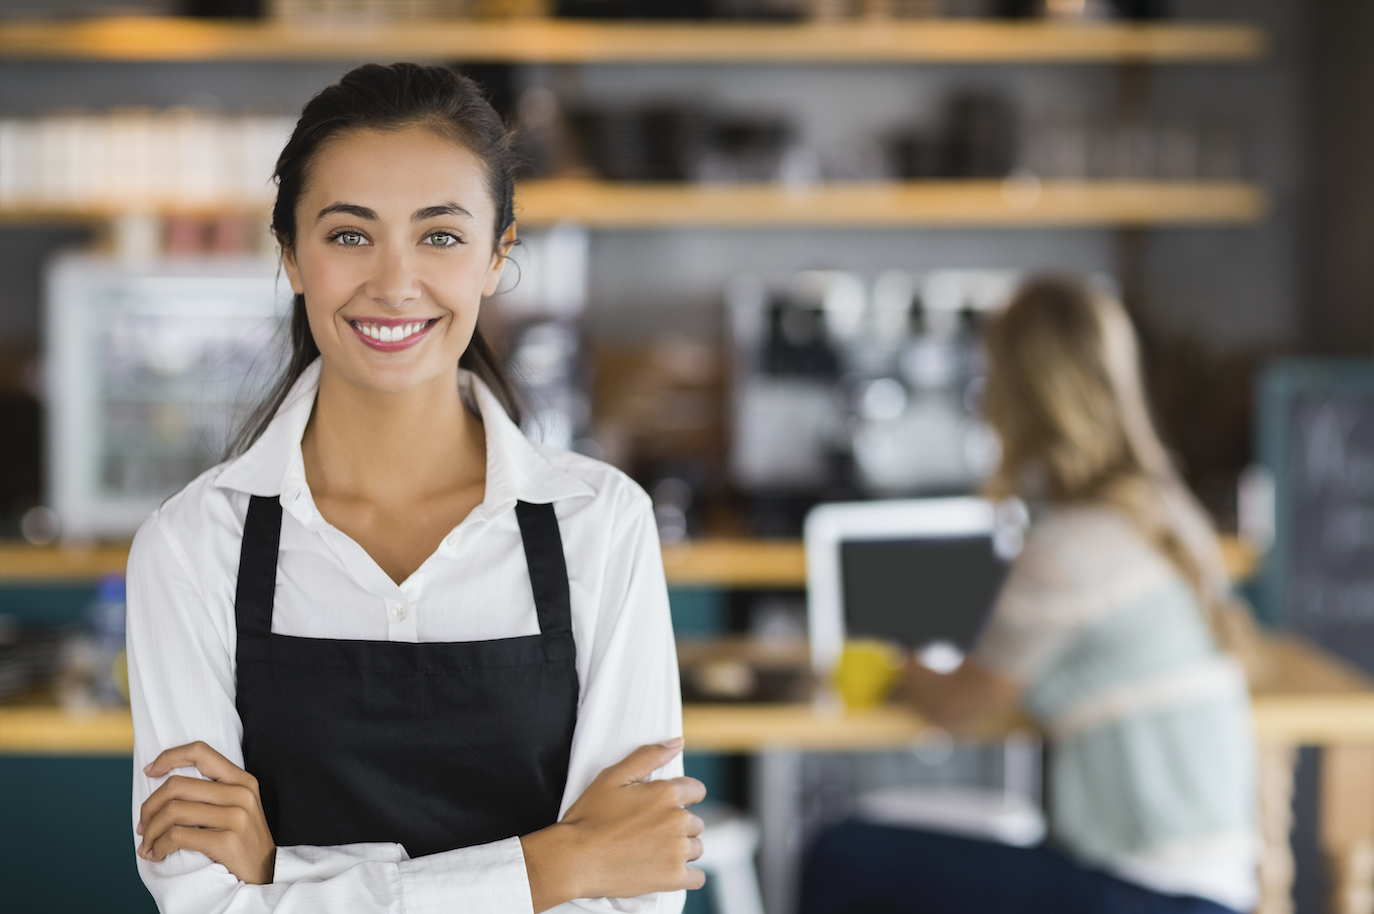 Woman in apron smiling